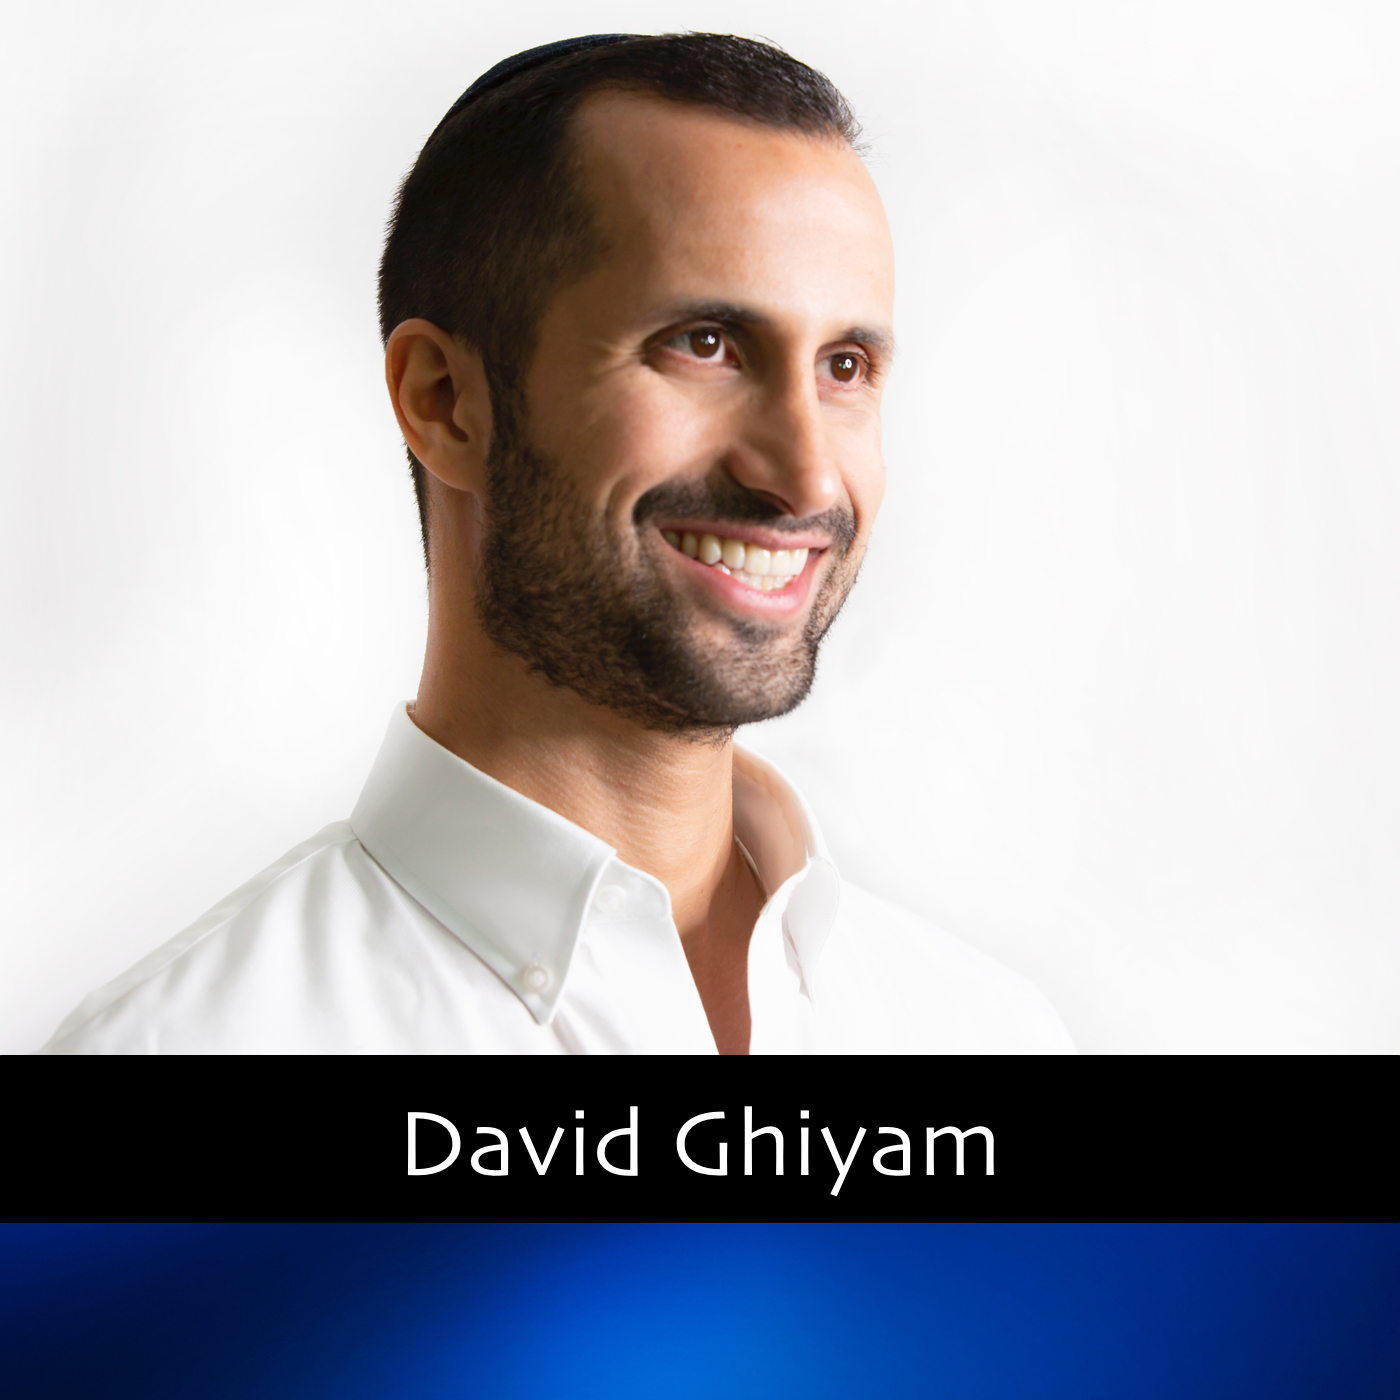 David Ghiyam thumb.jpg